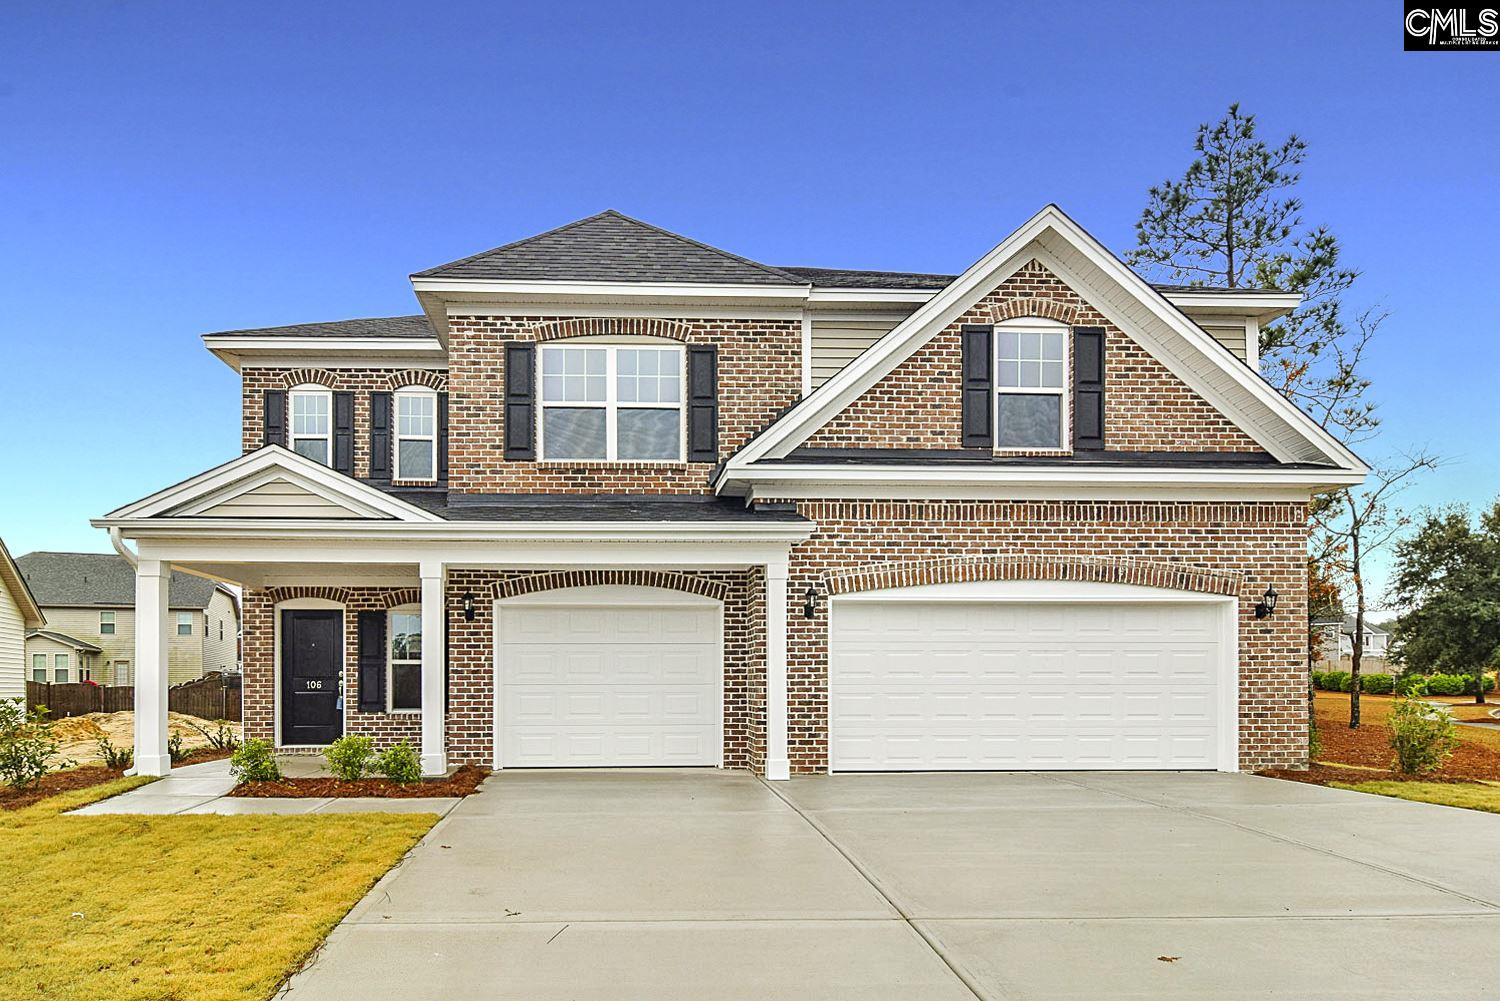 106 Adastra #467 Lexington, SC 29072